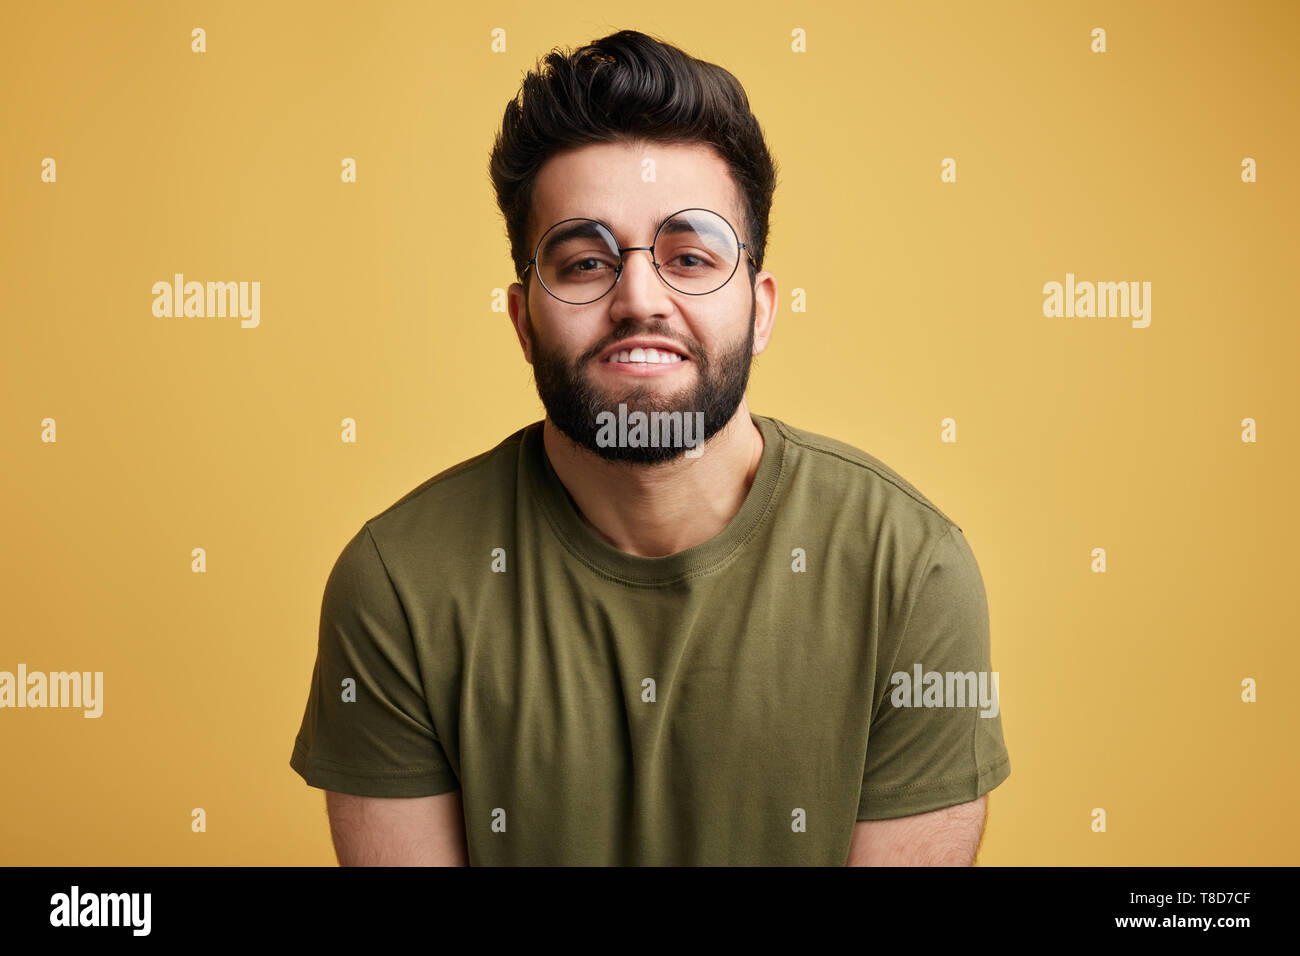 Attractive awesome positive harmless man in glasses showi ng his white teeth. close up photo. isolated yellow background. obedient guy.obedience concept - Stock Image